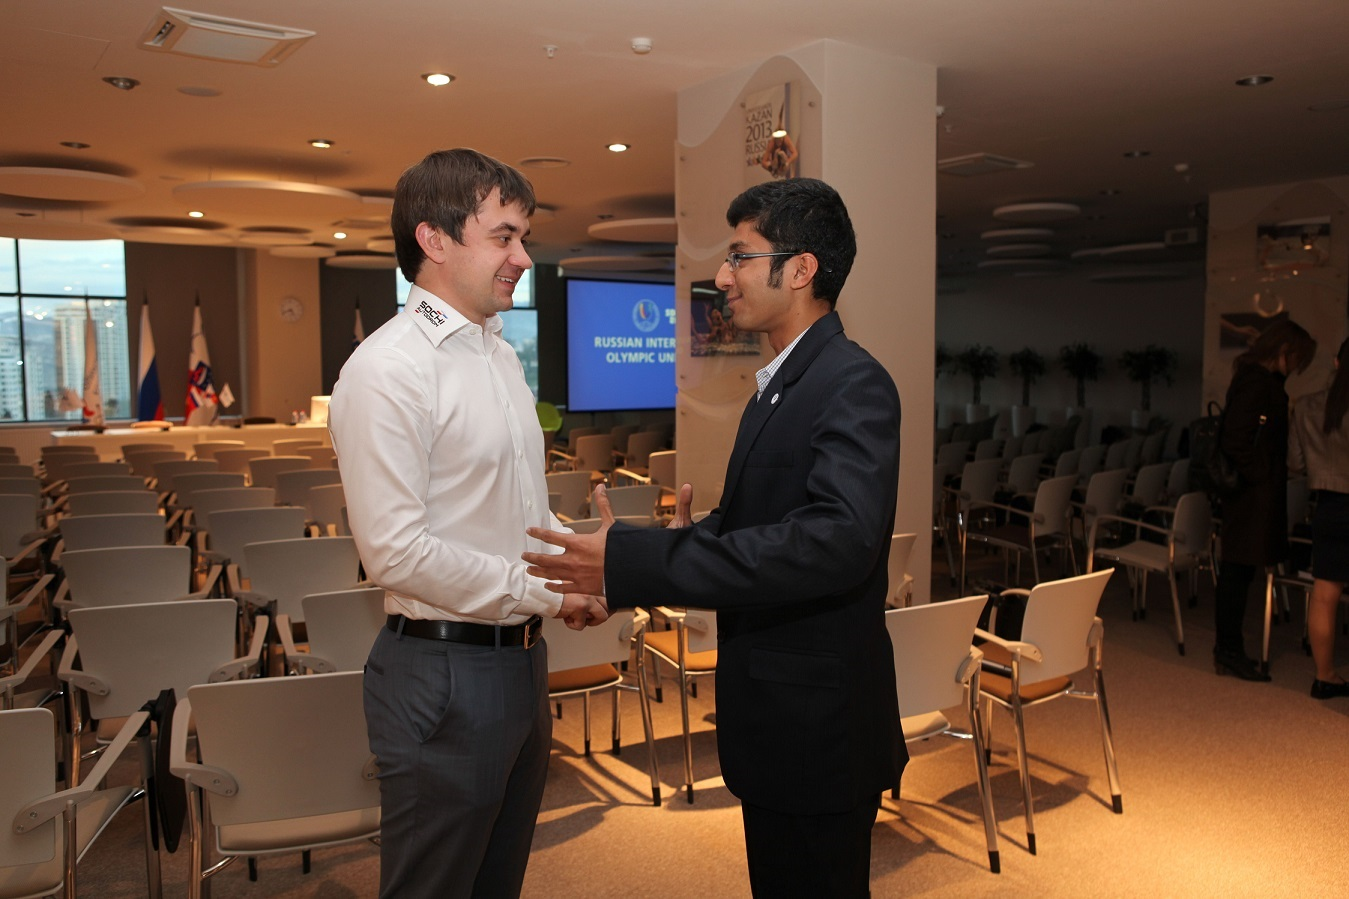 Sergei Vorobyev (left), deputy general director of Russian Grand Prix promoters Omega Centre, speaks with Parth Kalke (right), a RIOU MSA student ©RIOU